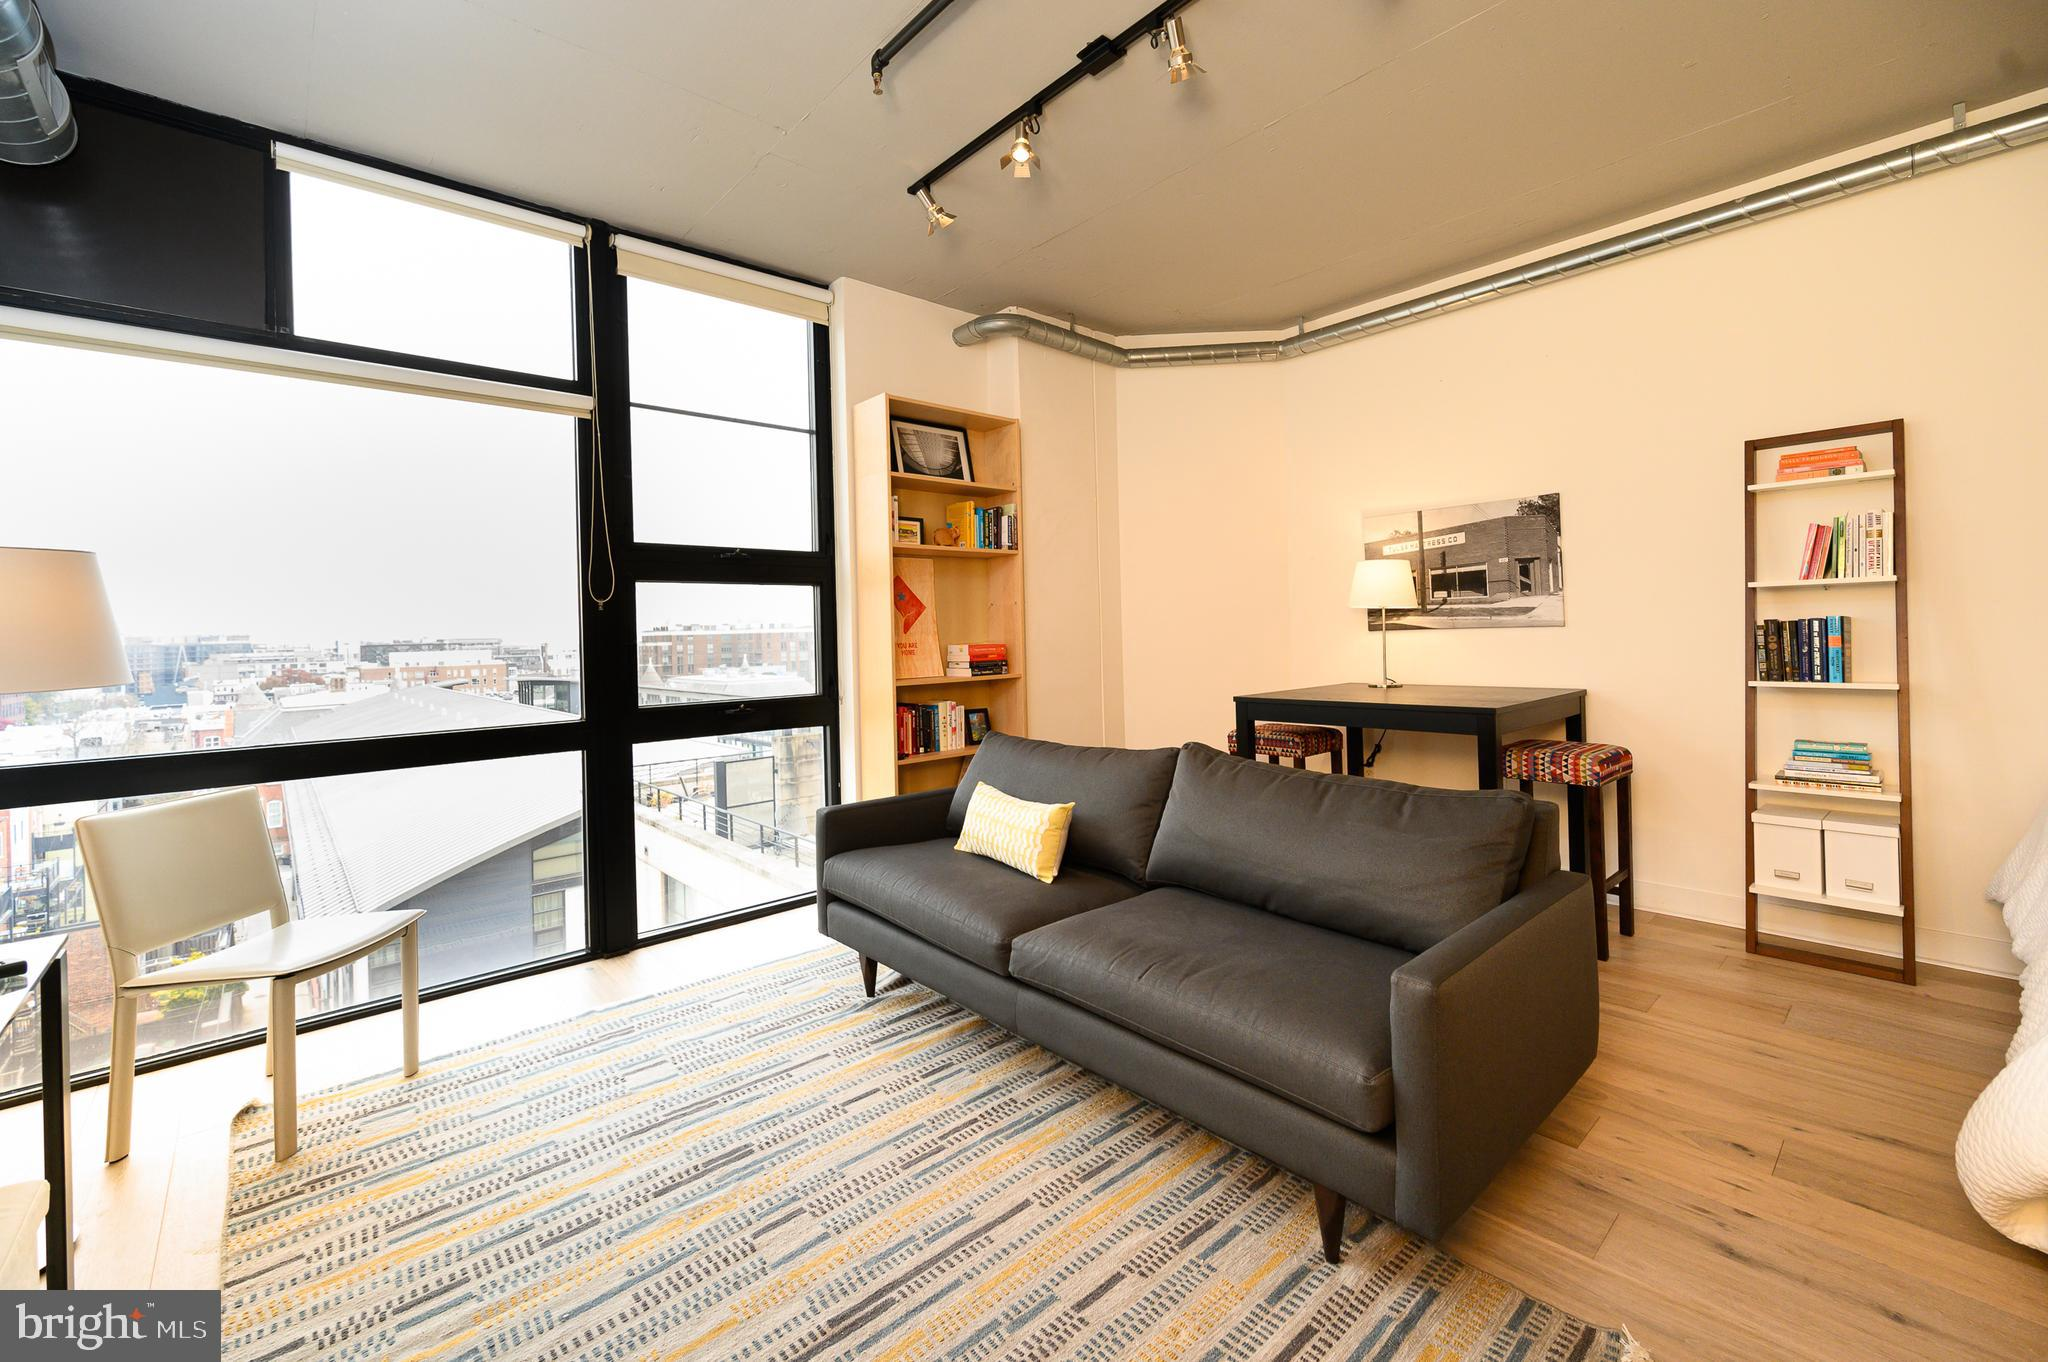 Chic, sweet studio condo in the Flats at Union Row.  Open concept 500 + sq ft unit full of everythin